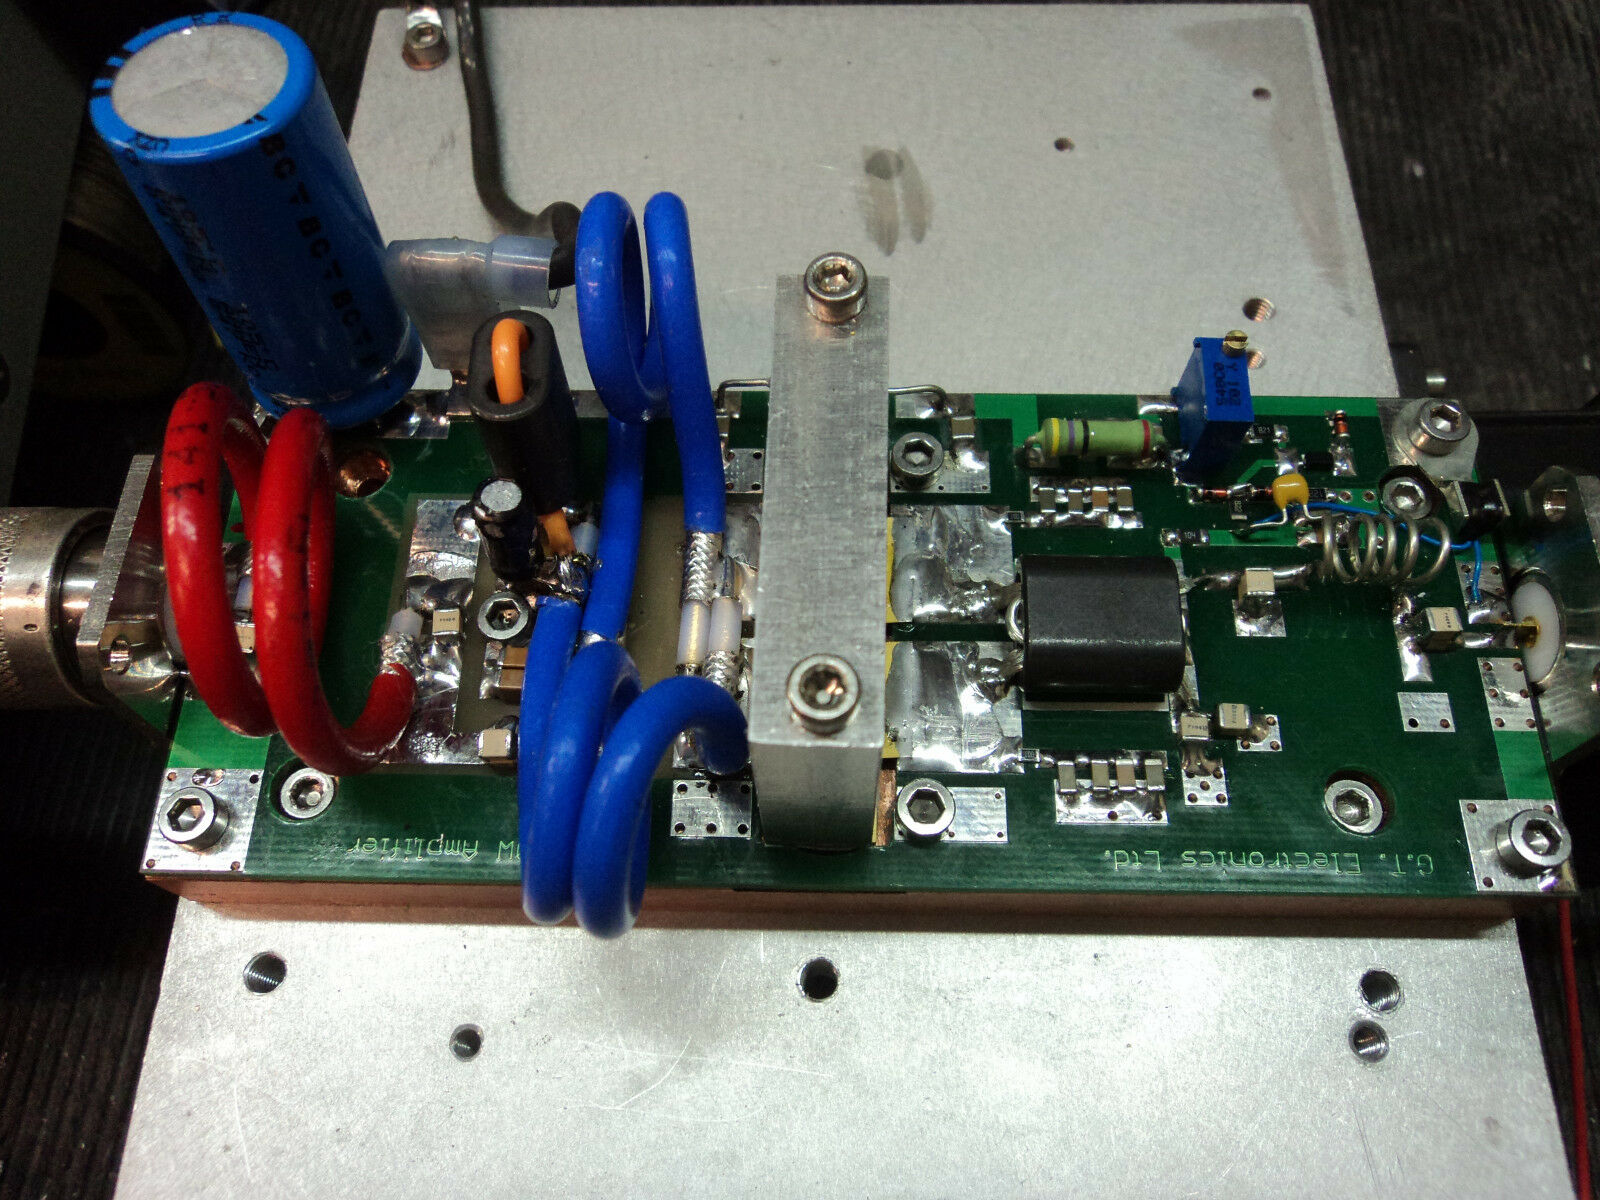 48 73 Mhz Power Amplifier Pallet 1000 Watts Class Ab Ssb Fm For Ham Amplifiers 1 Of 6only 2 Available